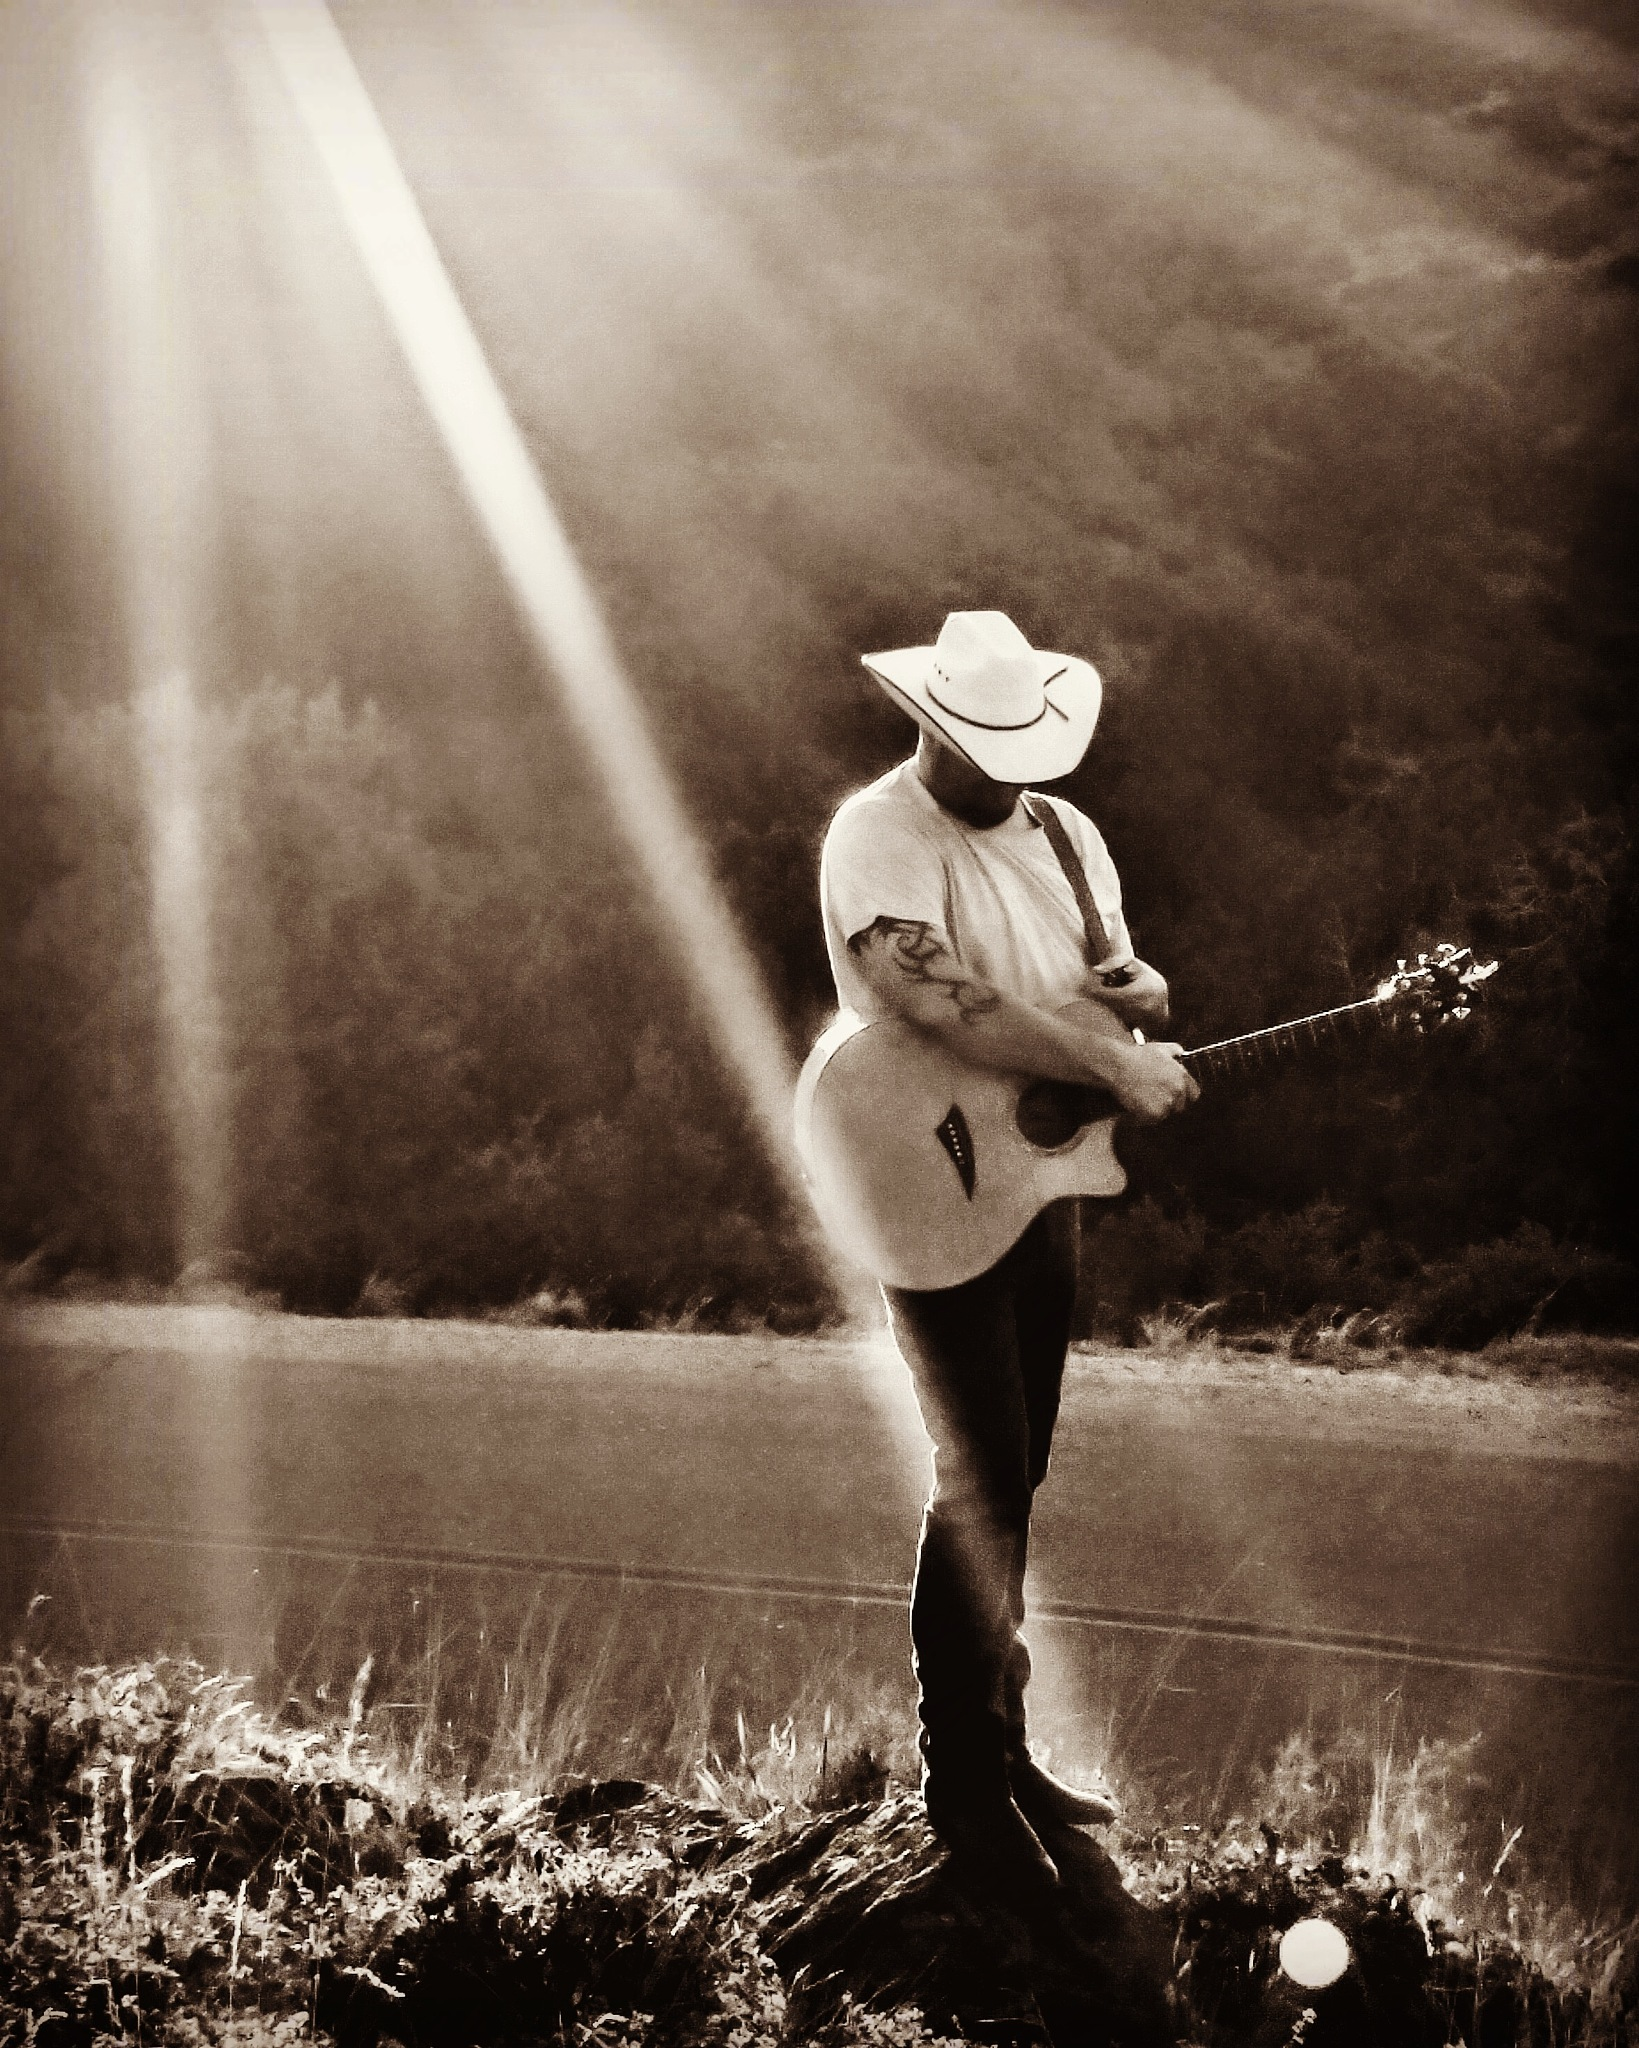 Me and my guitar by Chade Woodard